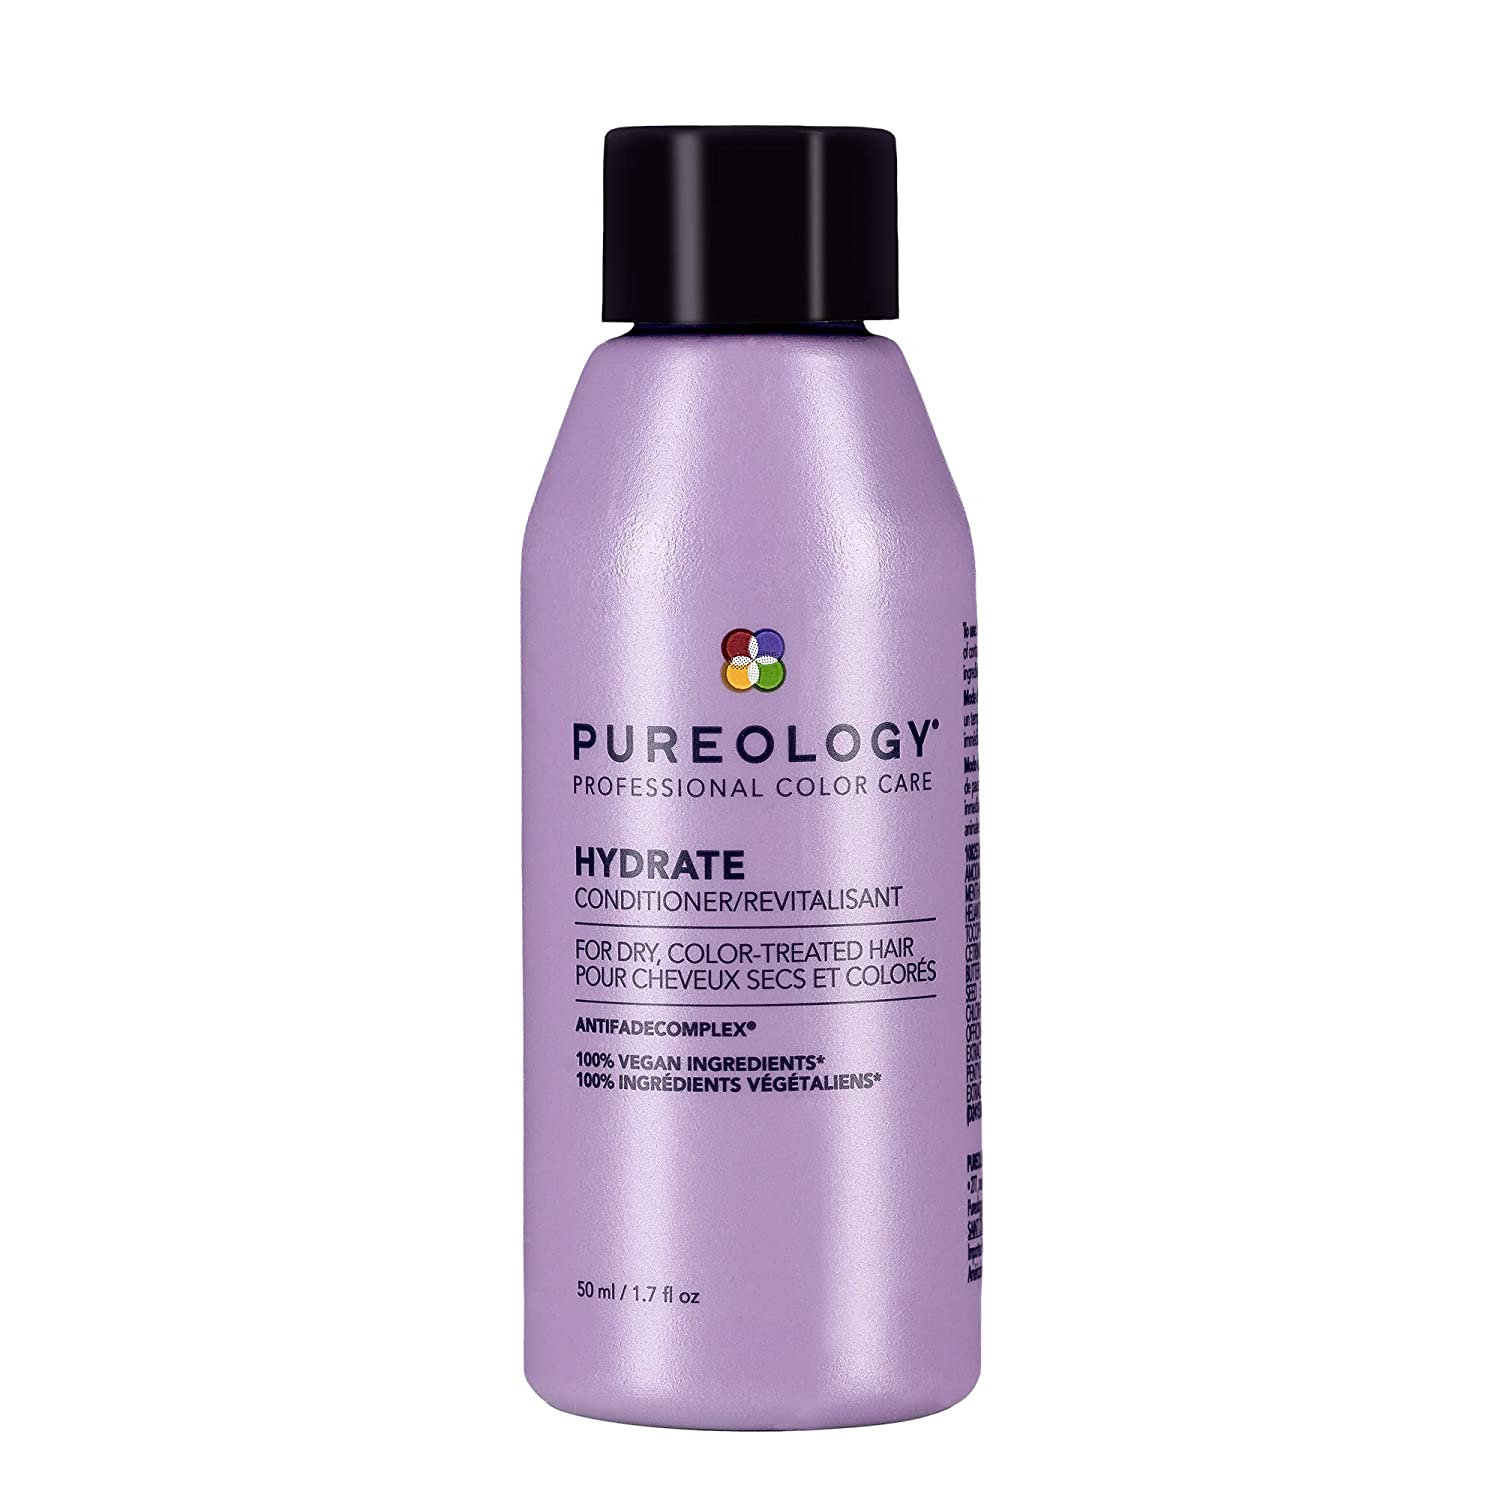 Pureology Hydrate Conditioner For Mo Max Long-awaited 72% OFF Dry Hair Color-Treated